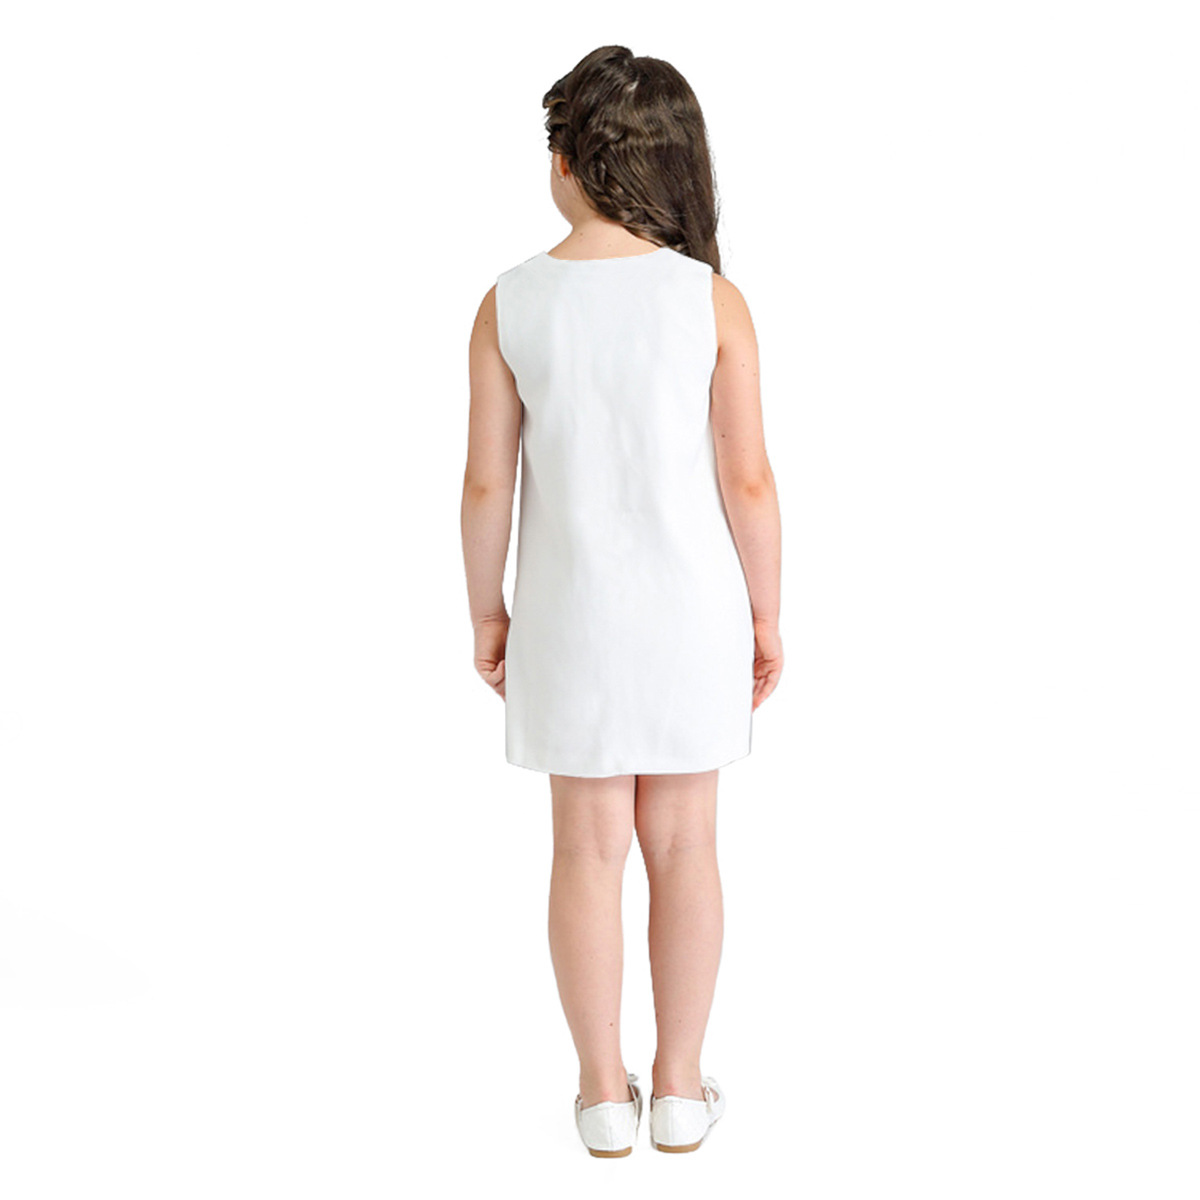 White Dresses For Girls